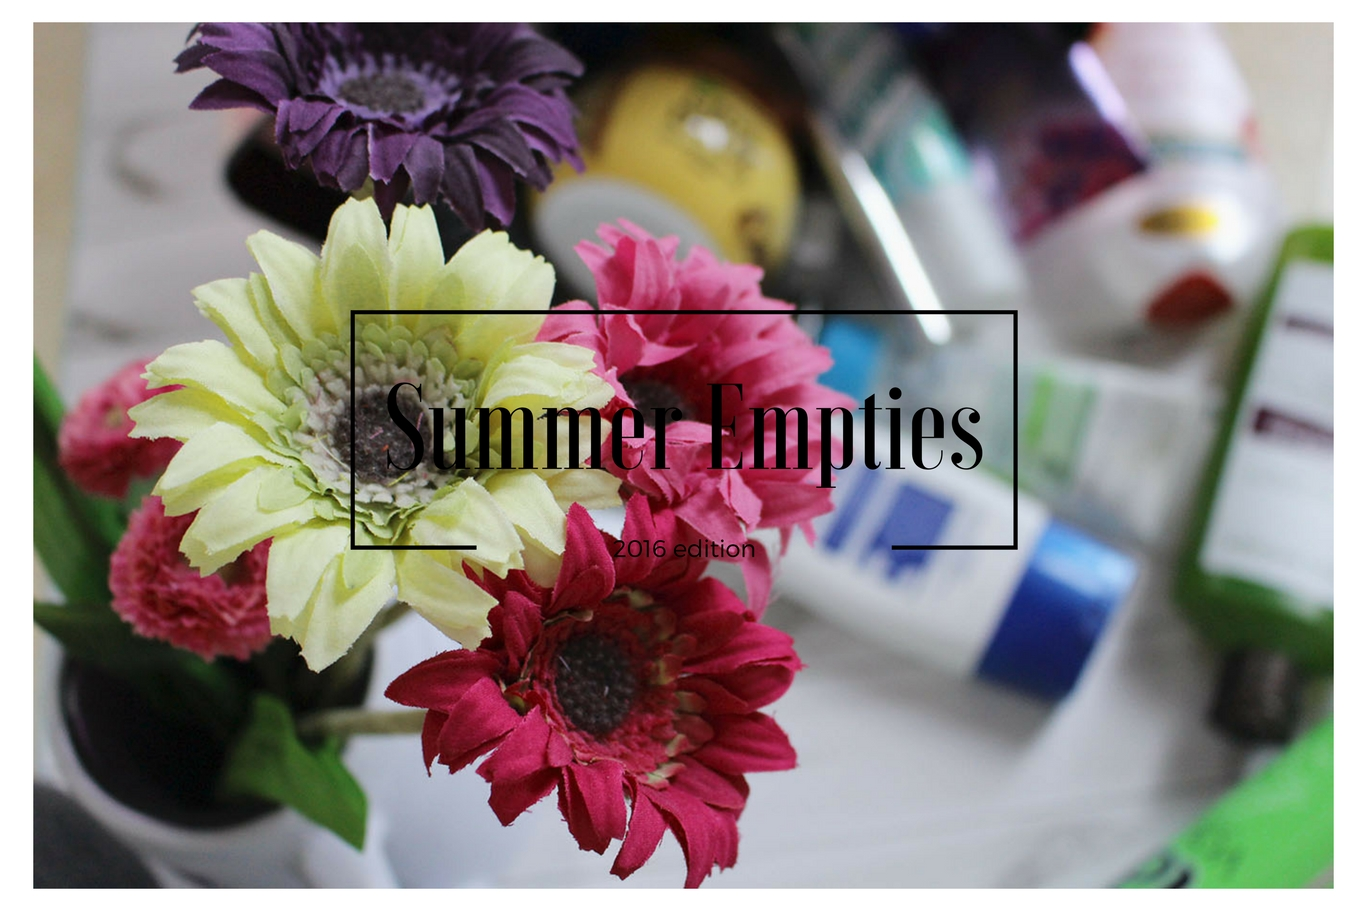 summer empties 2016